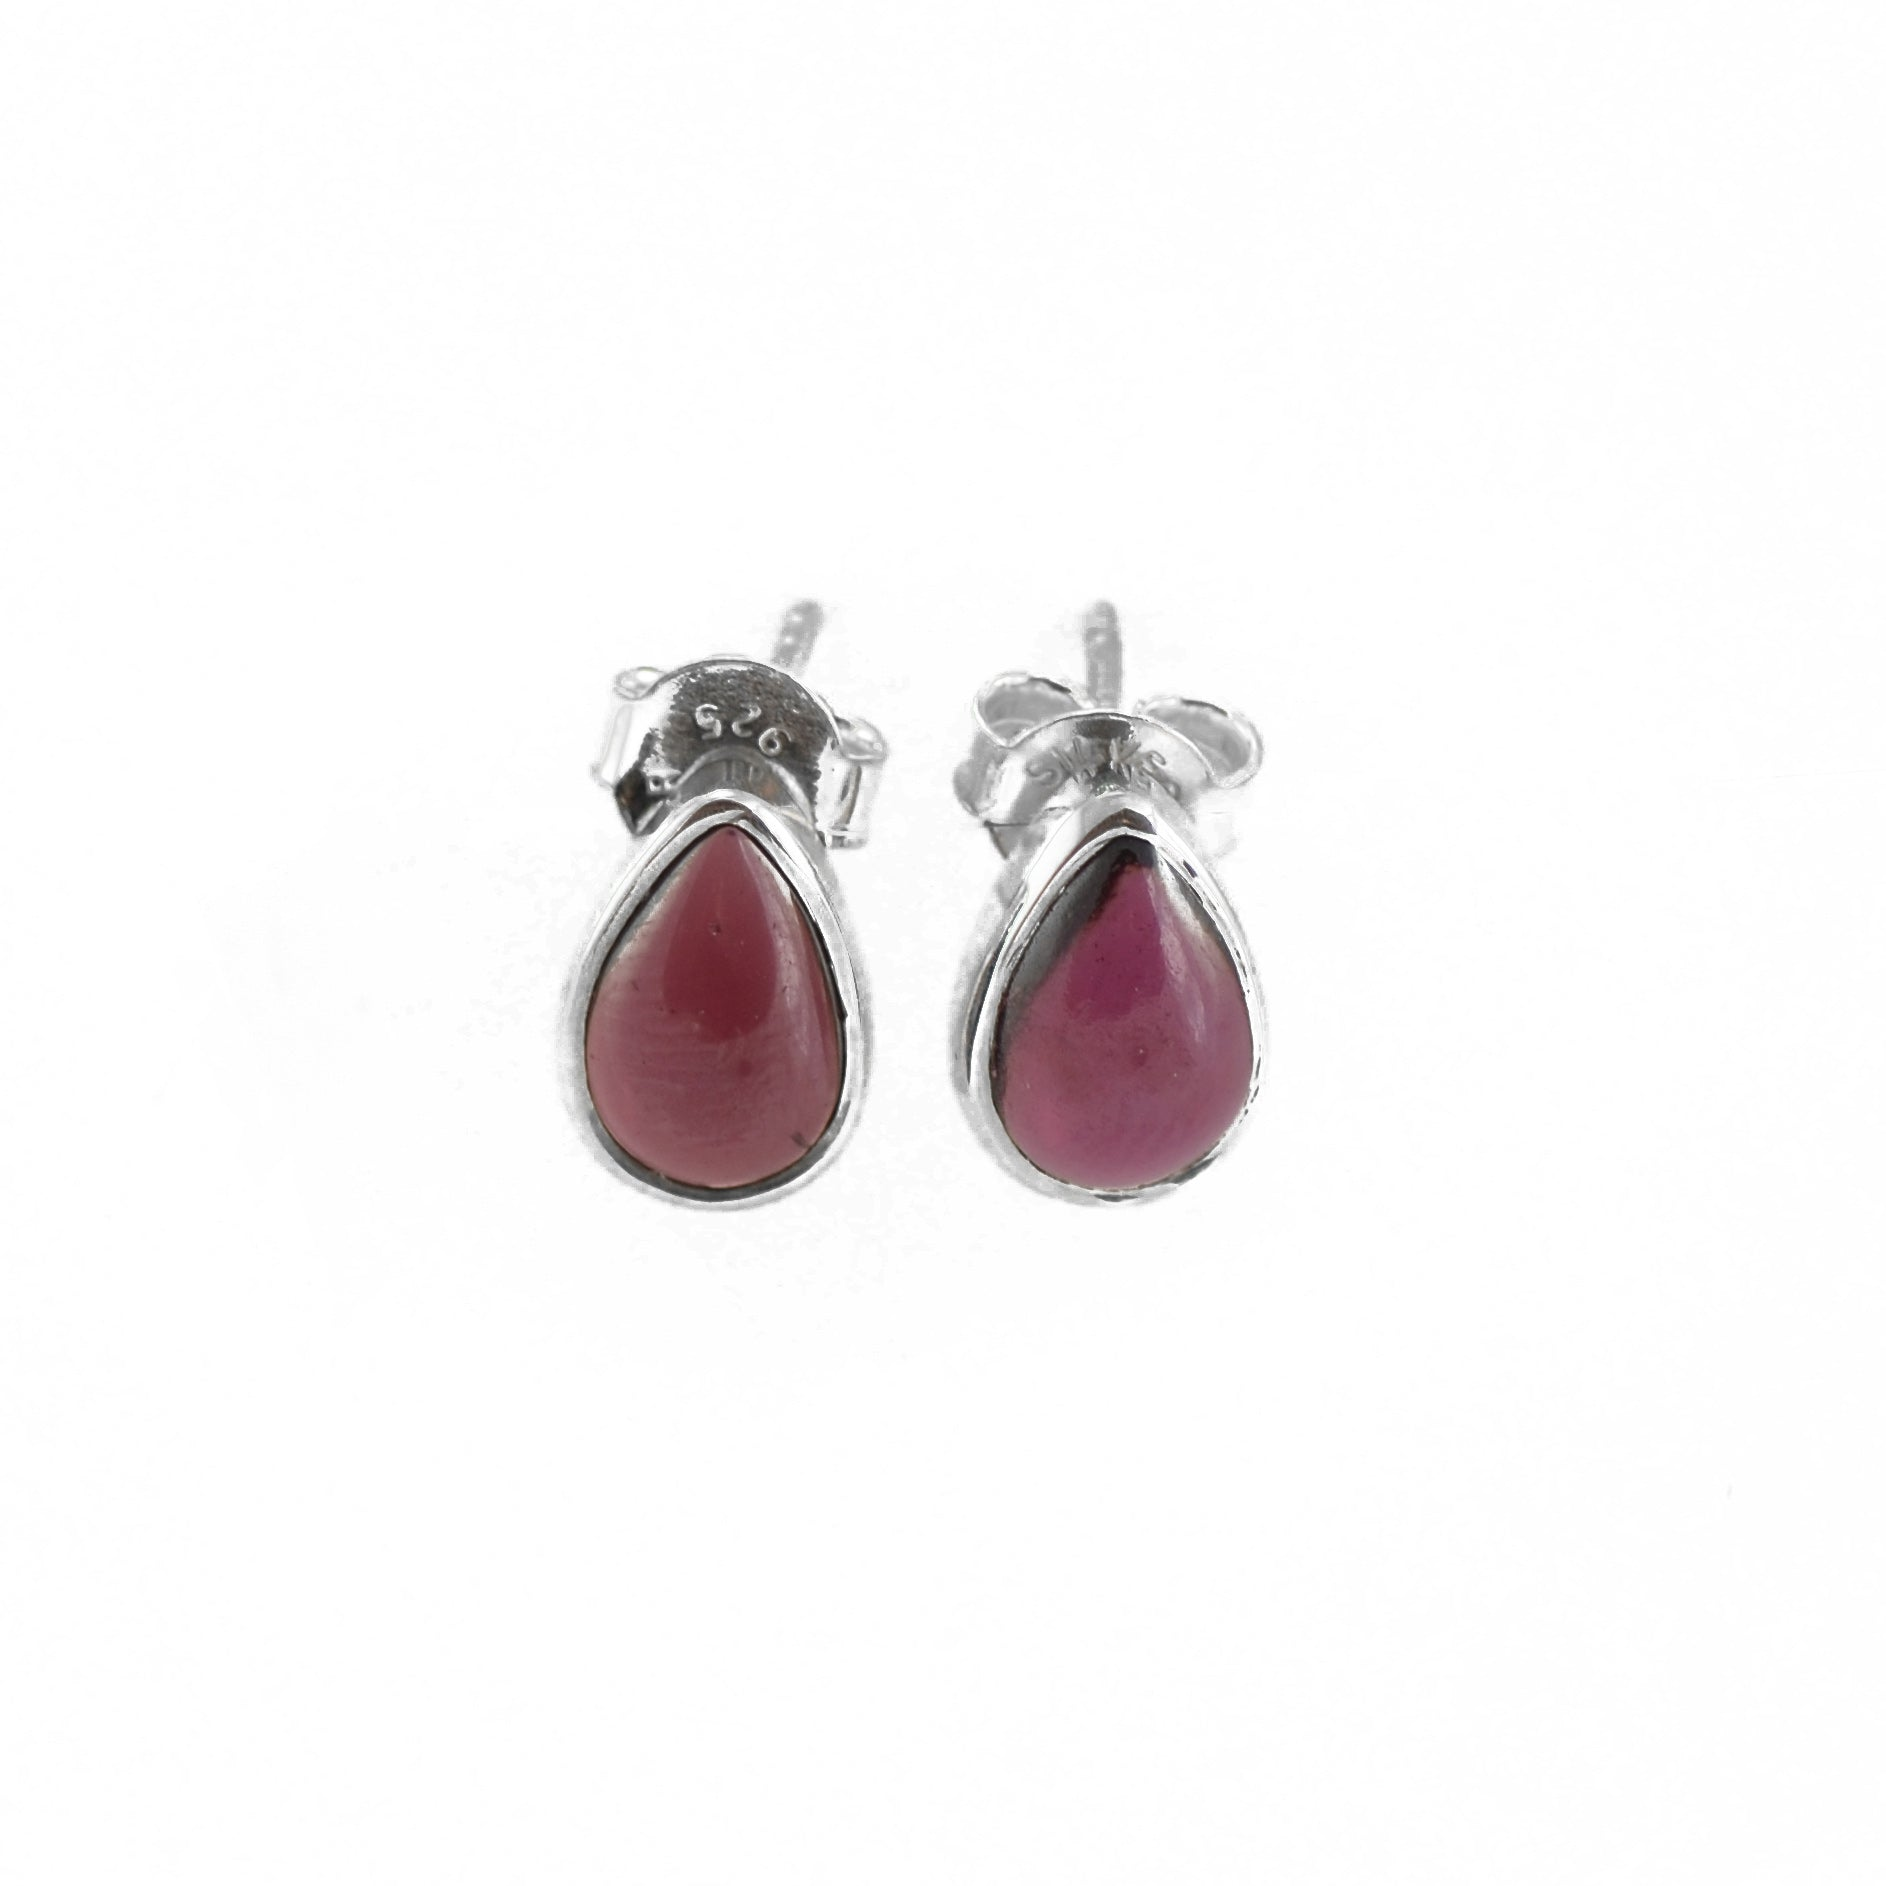 Teardrop Garnet Studded Silver Earrings